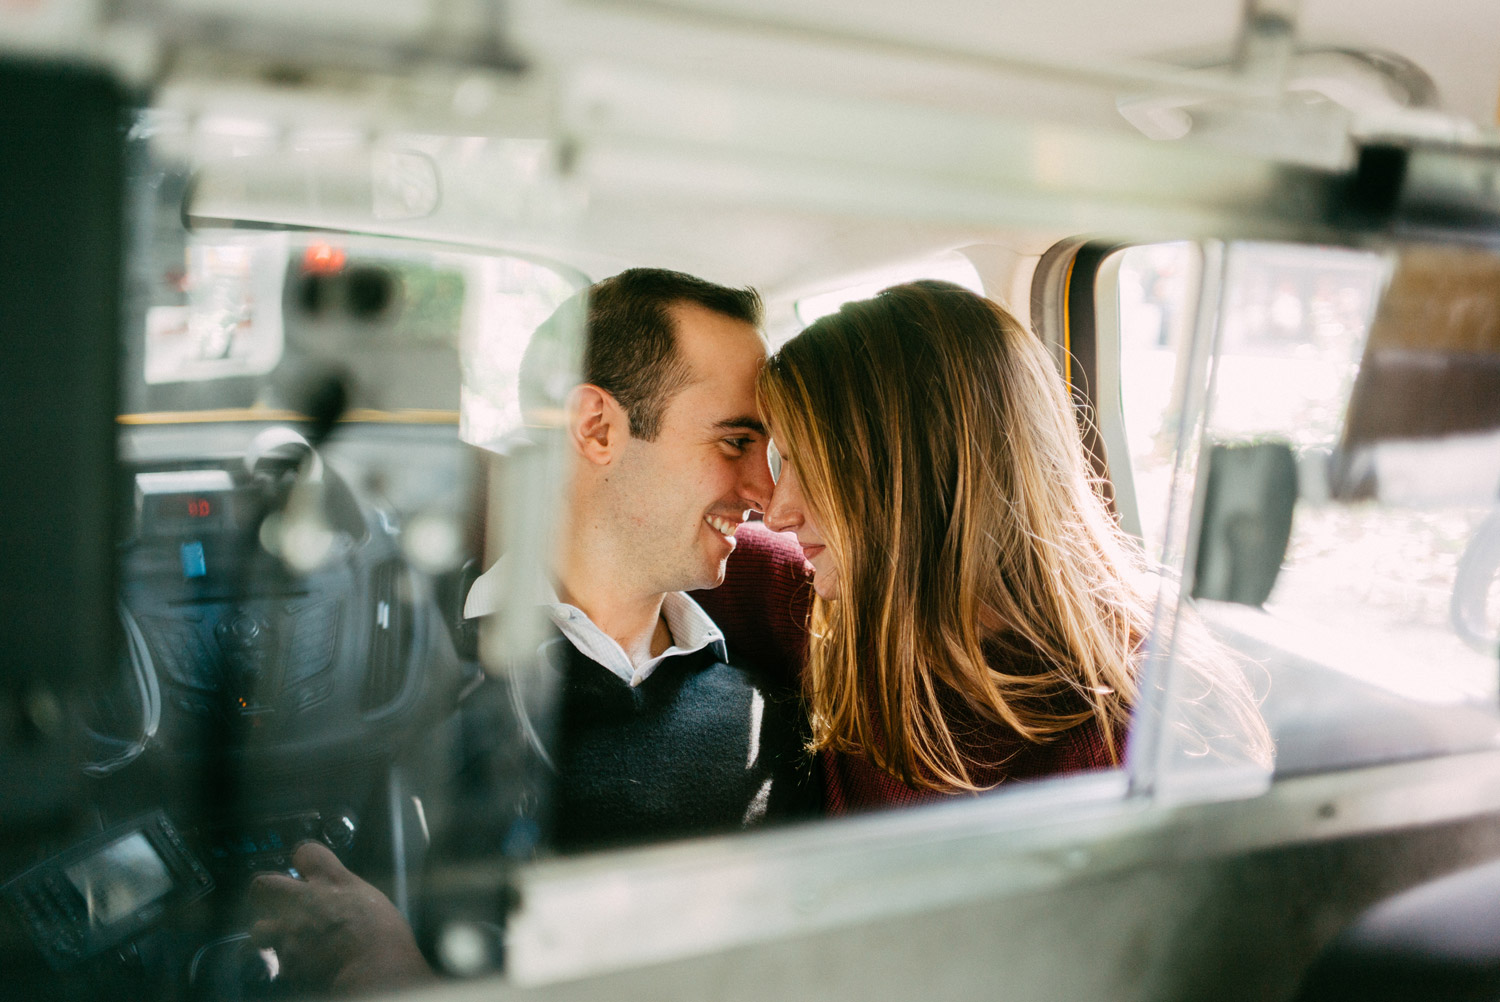 New York Taxi engagement photography by geneoh photography